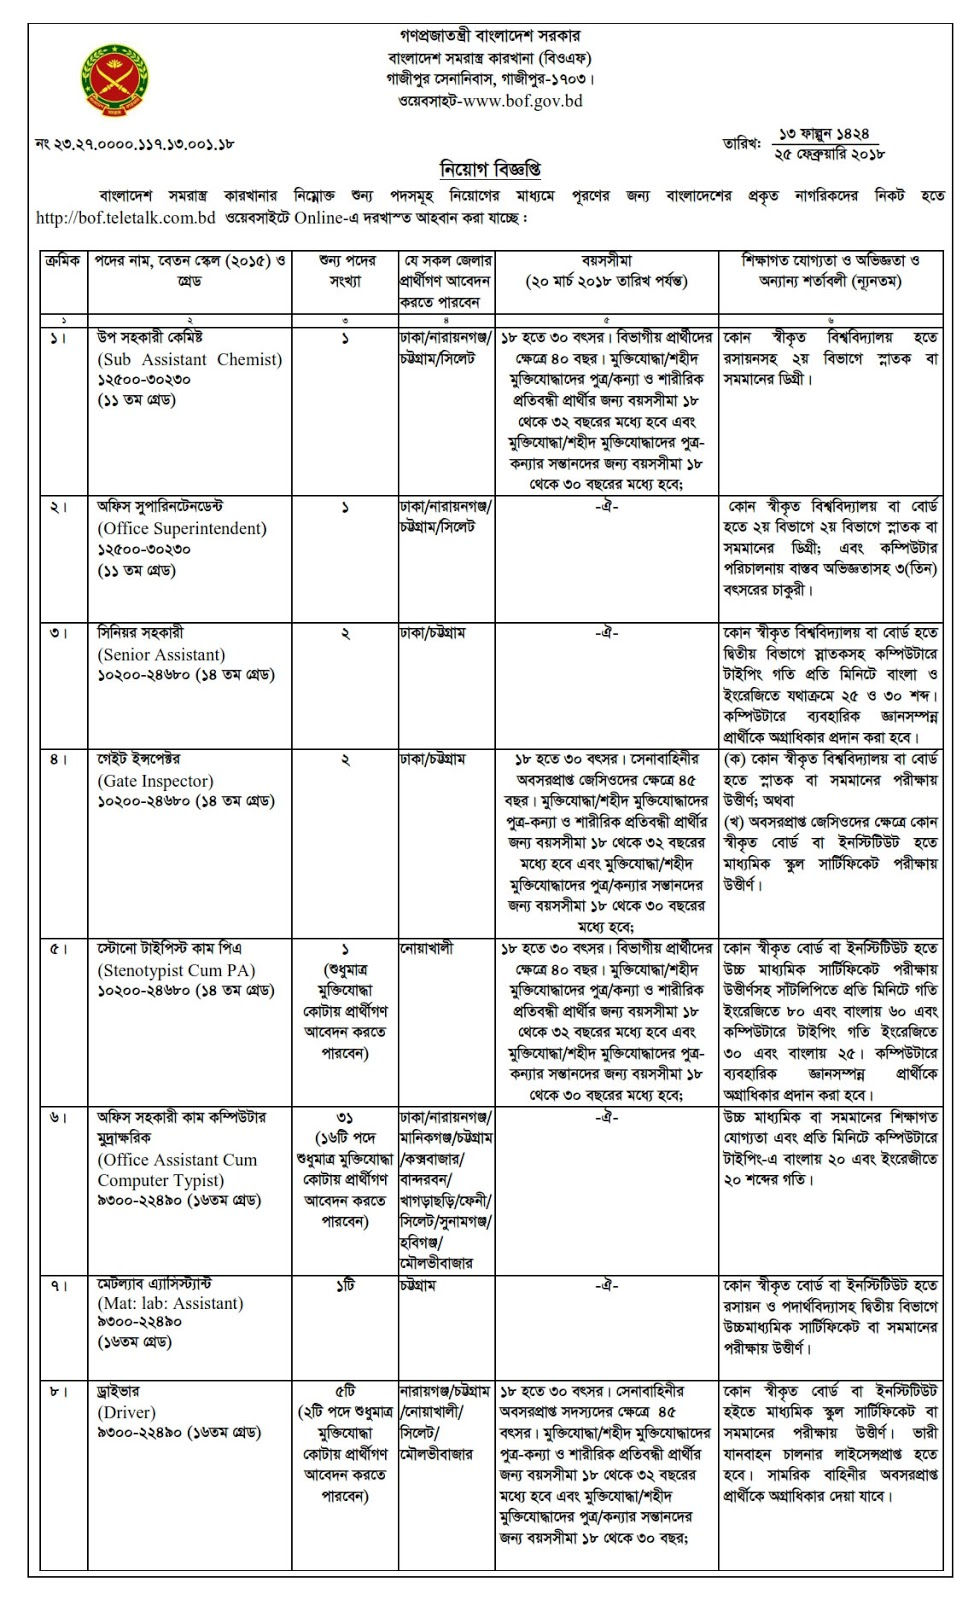 Bangladesh Ordnance Factories BOF Job Circular 2018